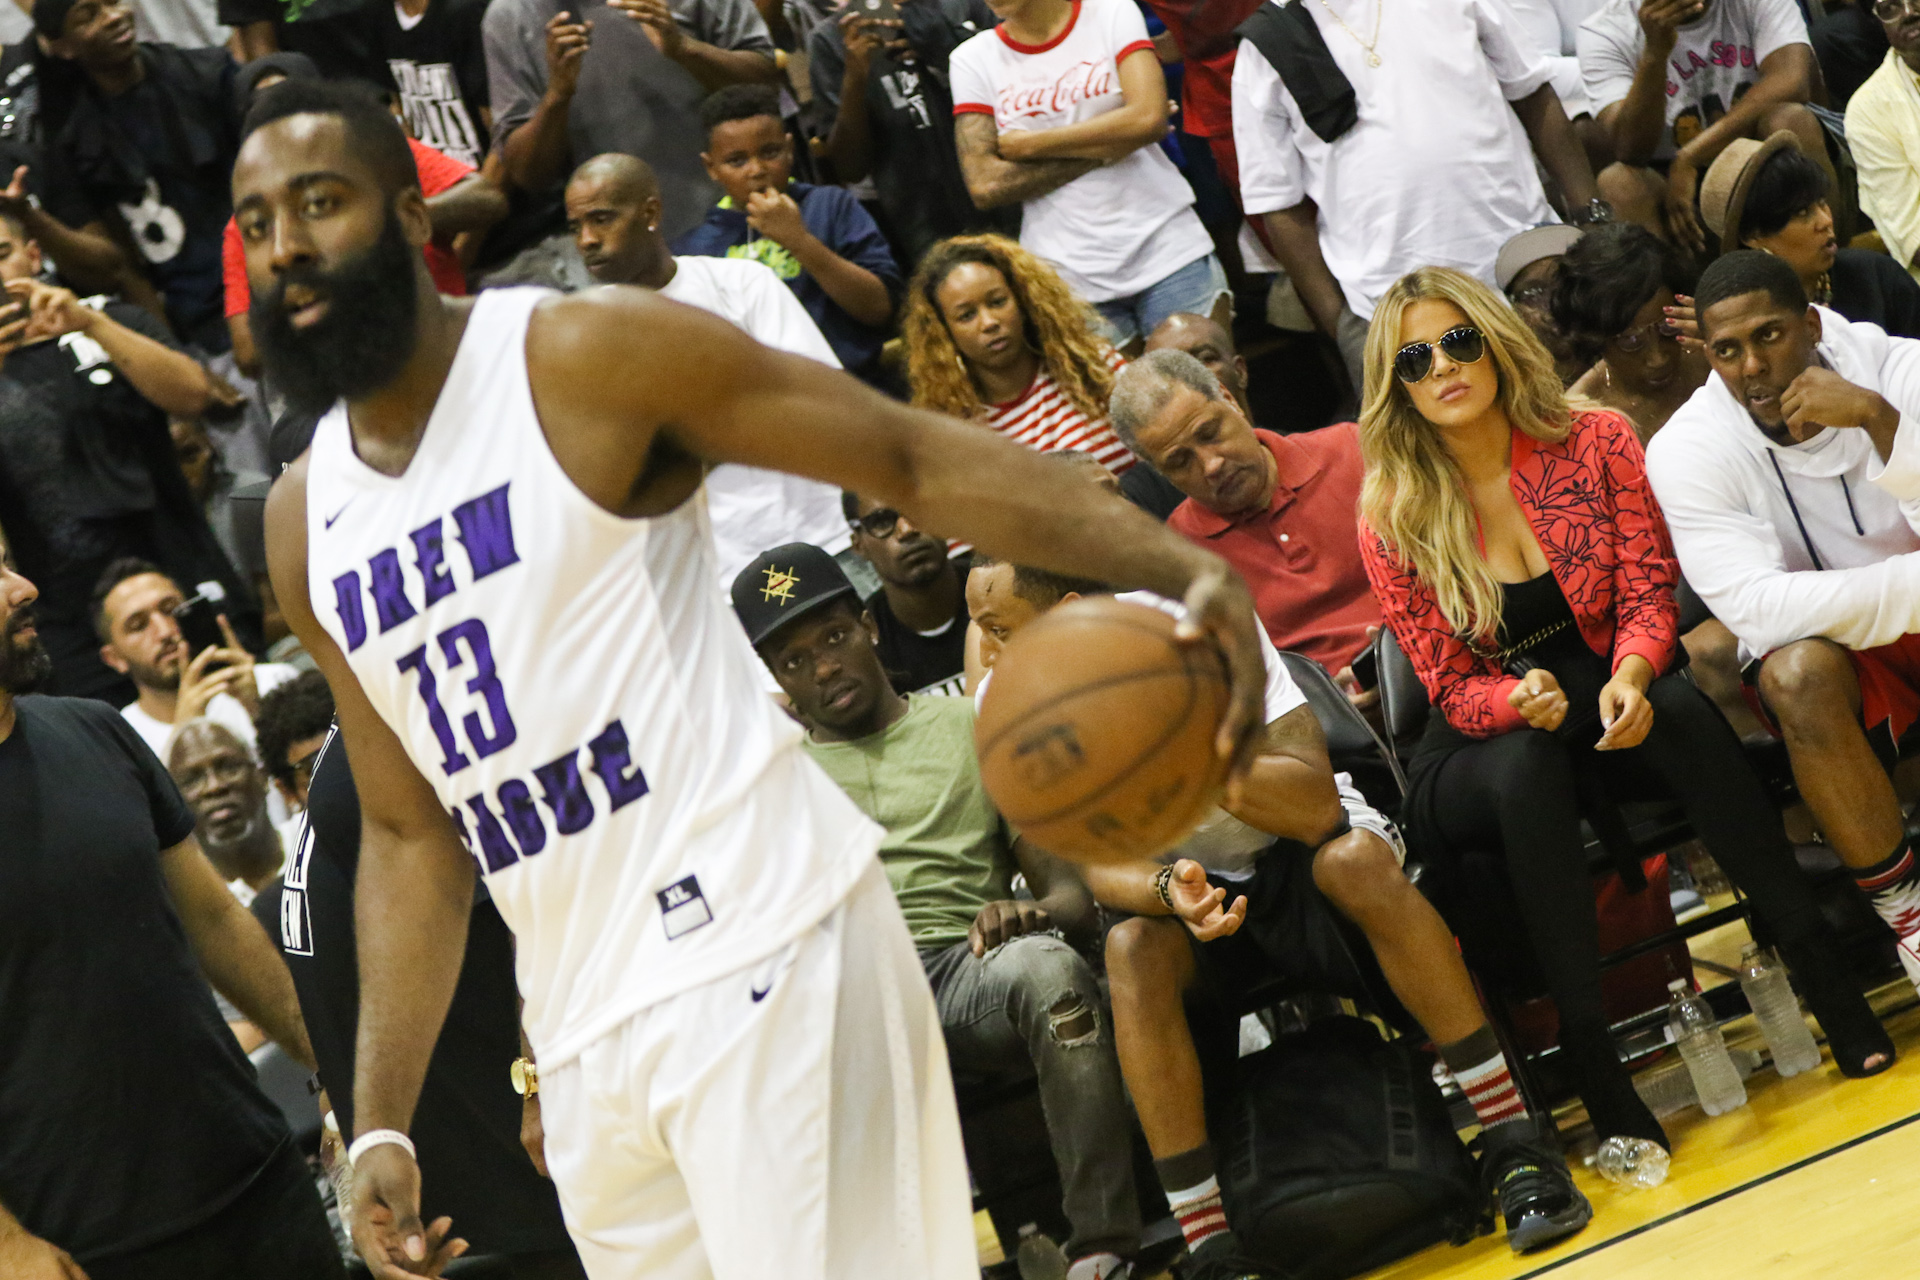 Khloe Kardashian attends reported boyfriend James Harden's Drew League basketball game in Compton